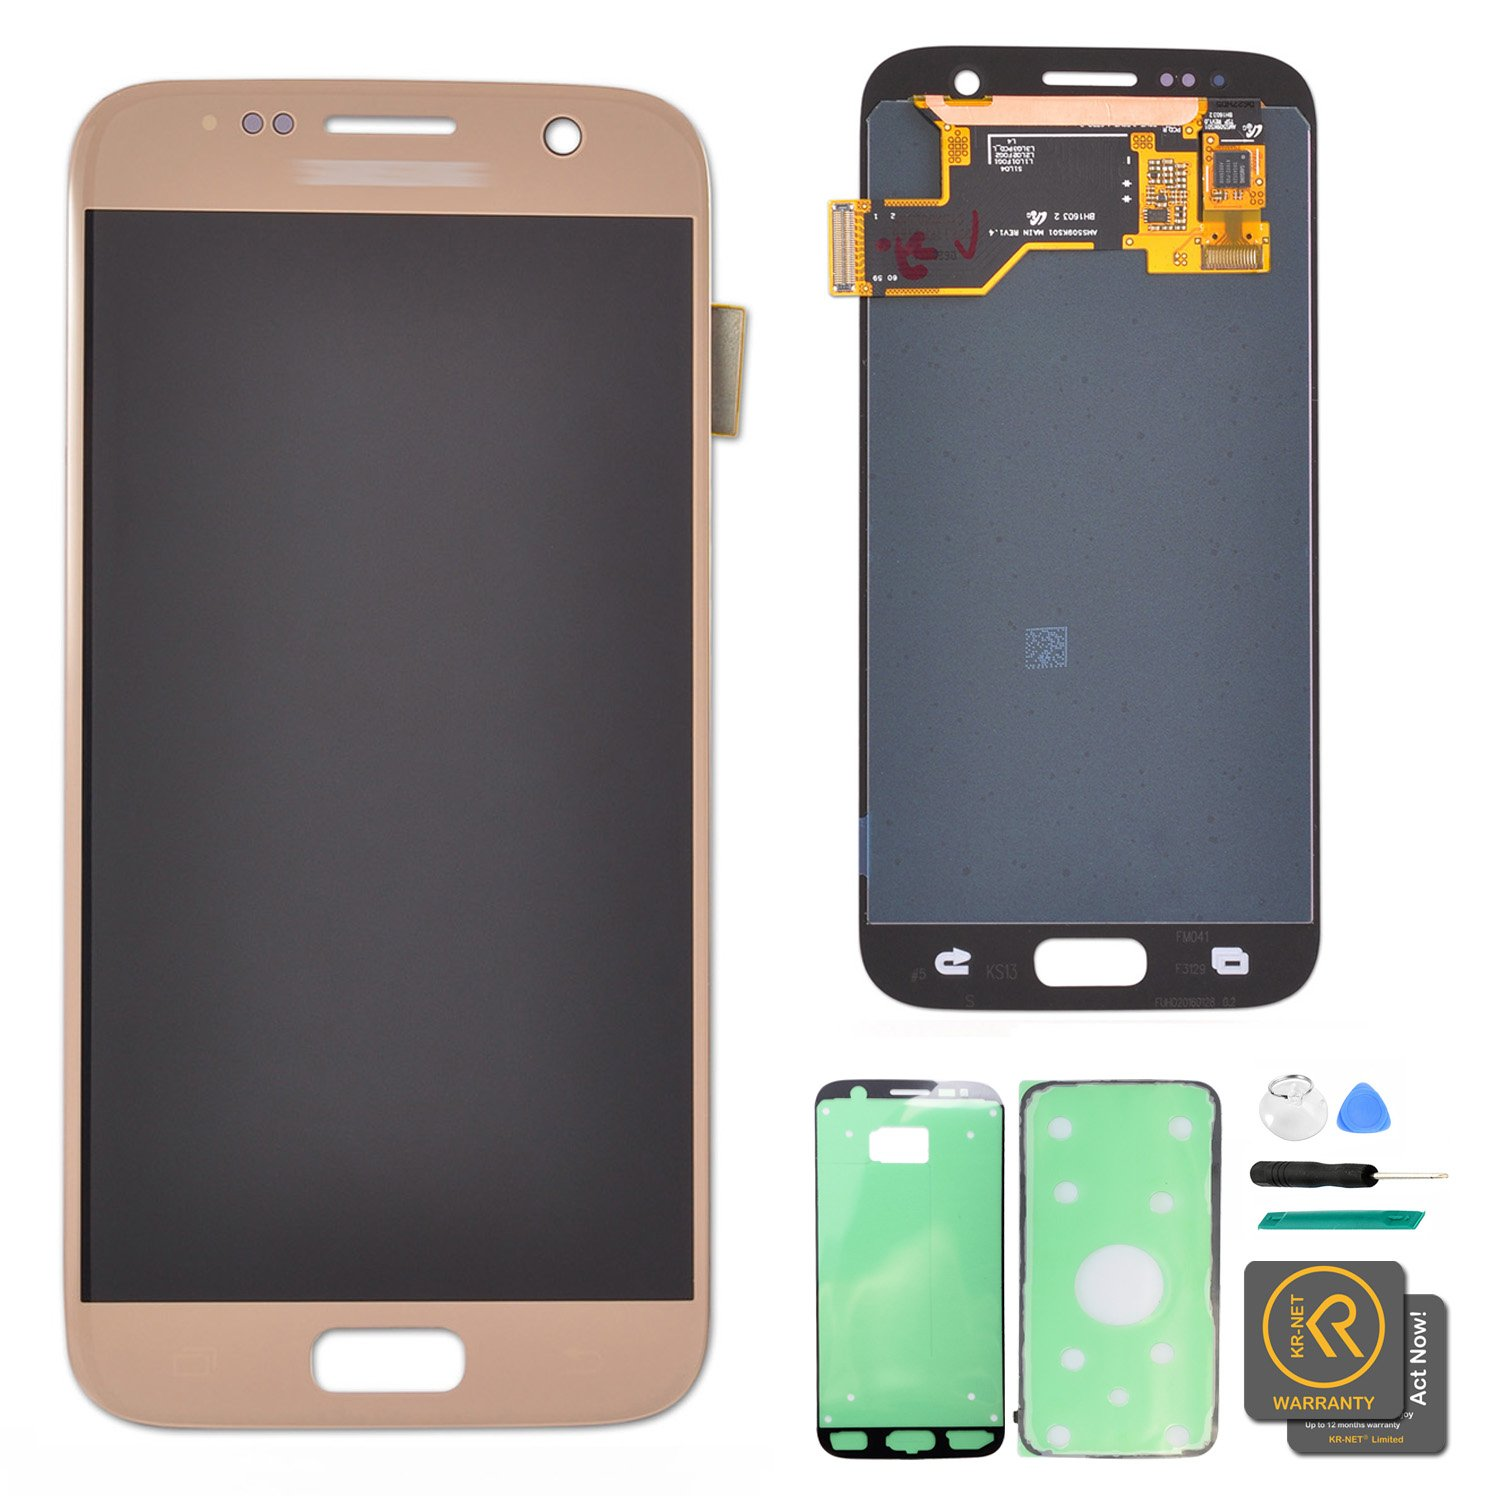 KR-NET LCD AMOLED Display Touch Screen Digitizer Assembly for Samsung Galaxy S7 G930 G930F G930A G930V G930P (Gold Platinum) + Tools